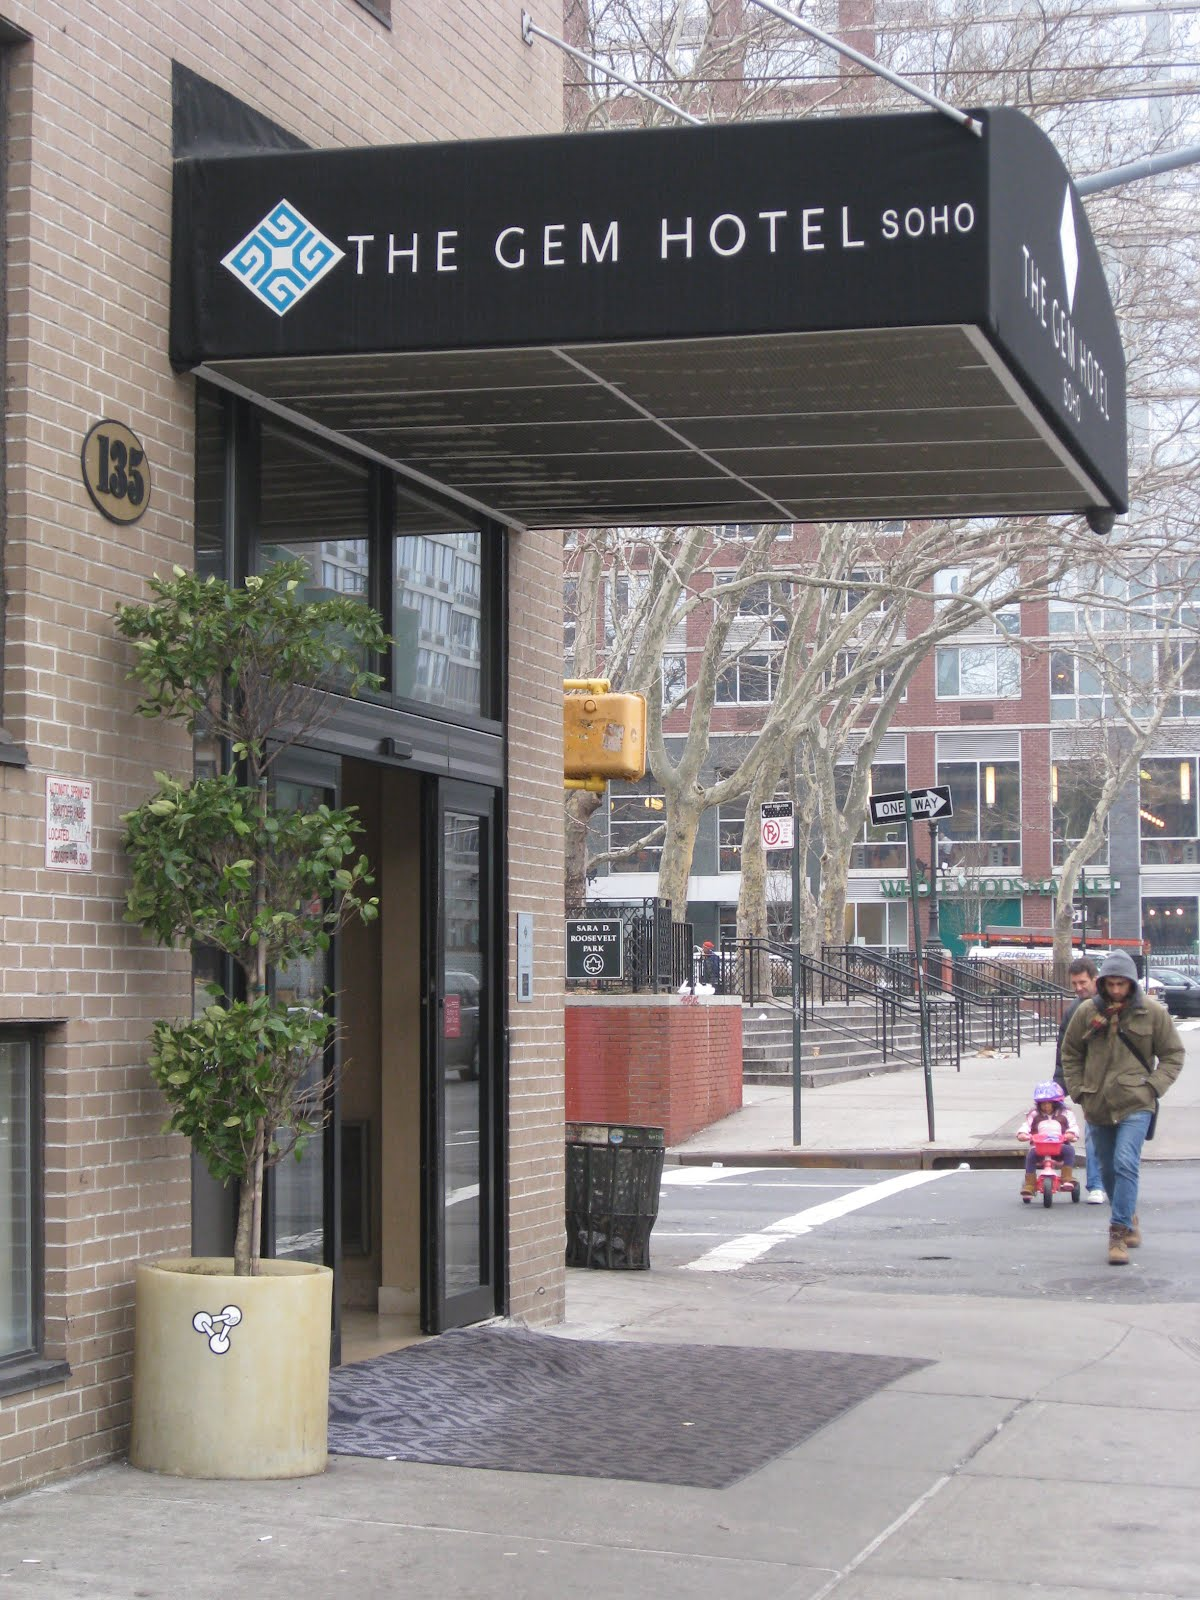 All about the famous places cheap hotels in new york city for Iconic places in new york